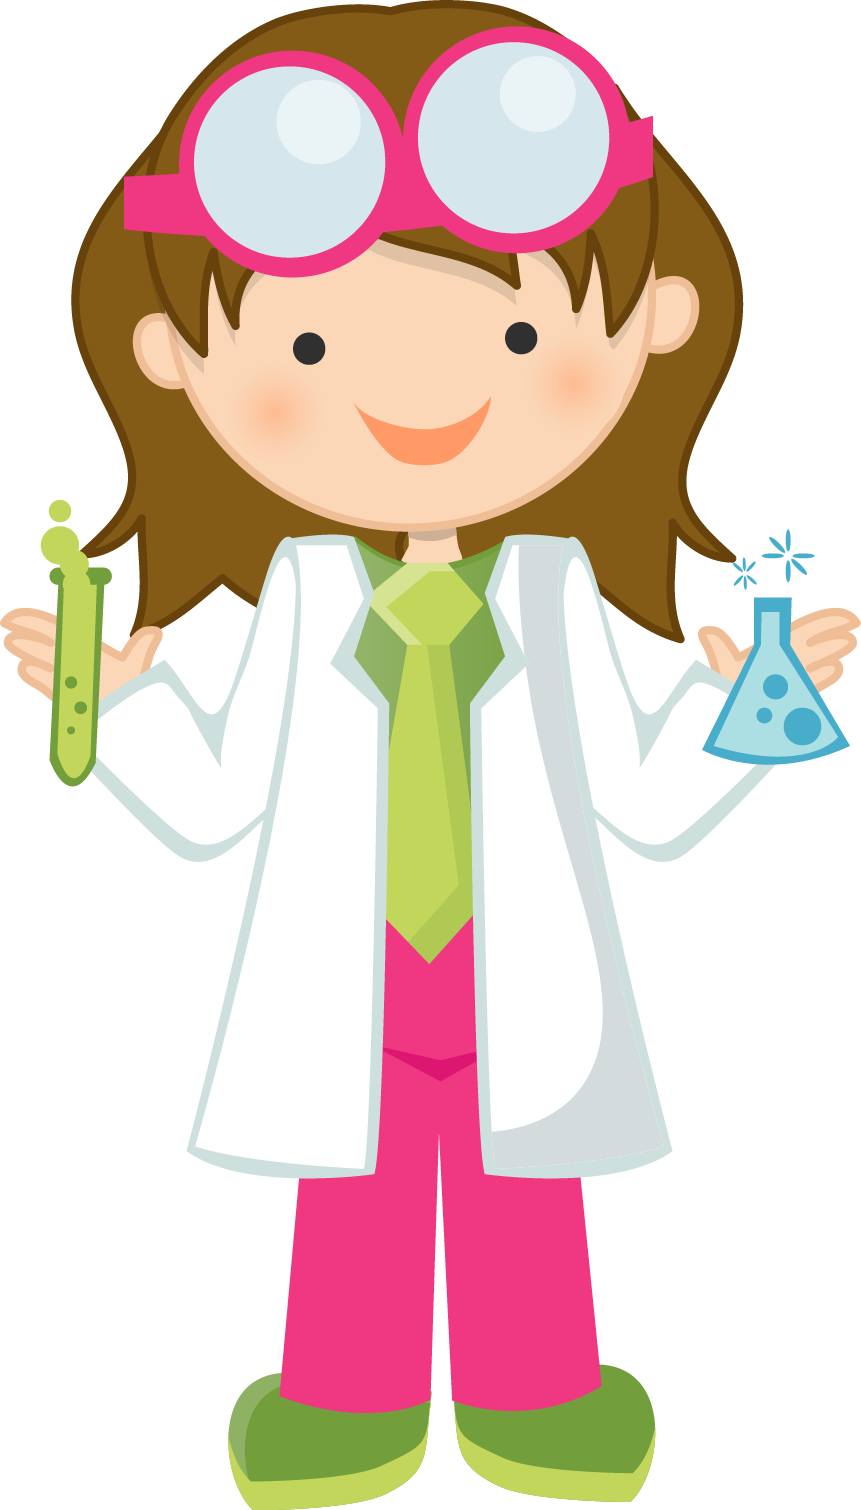 Scientist clipart easy. Girl free science fun